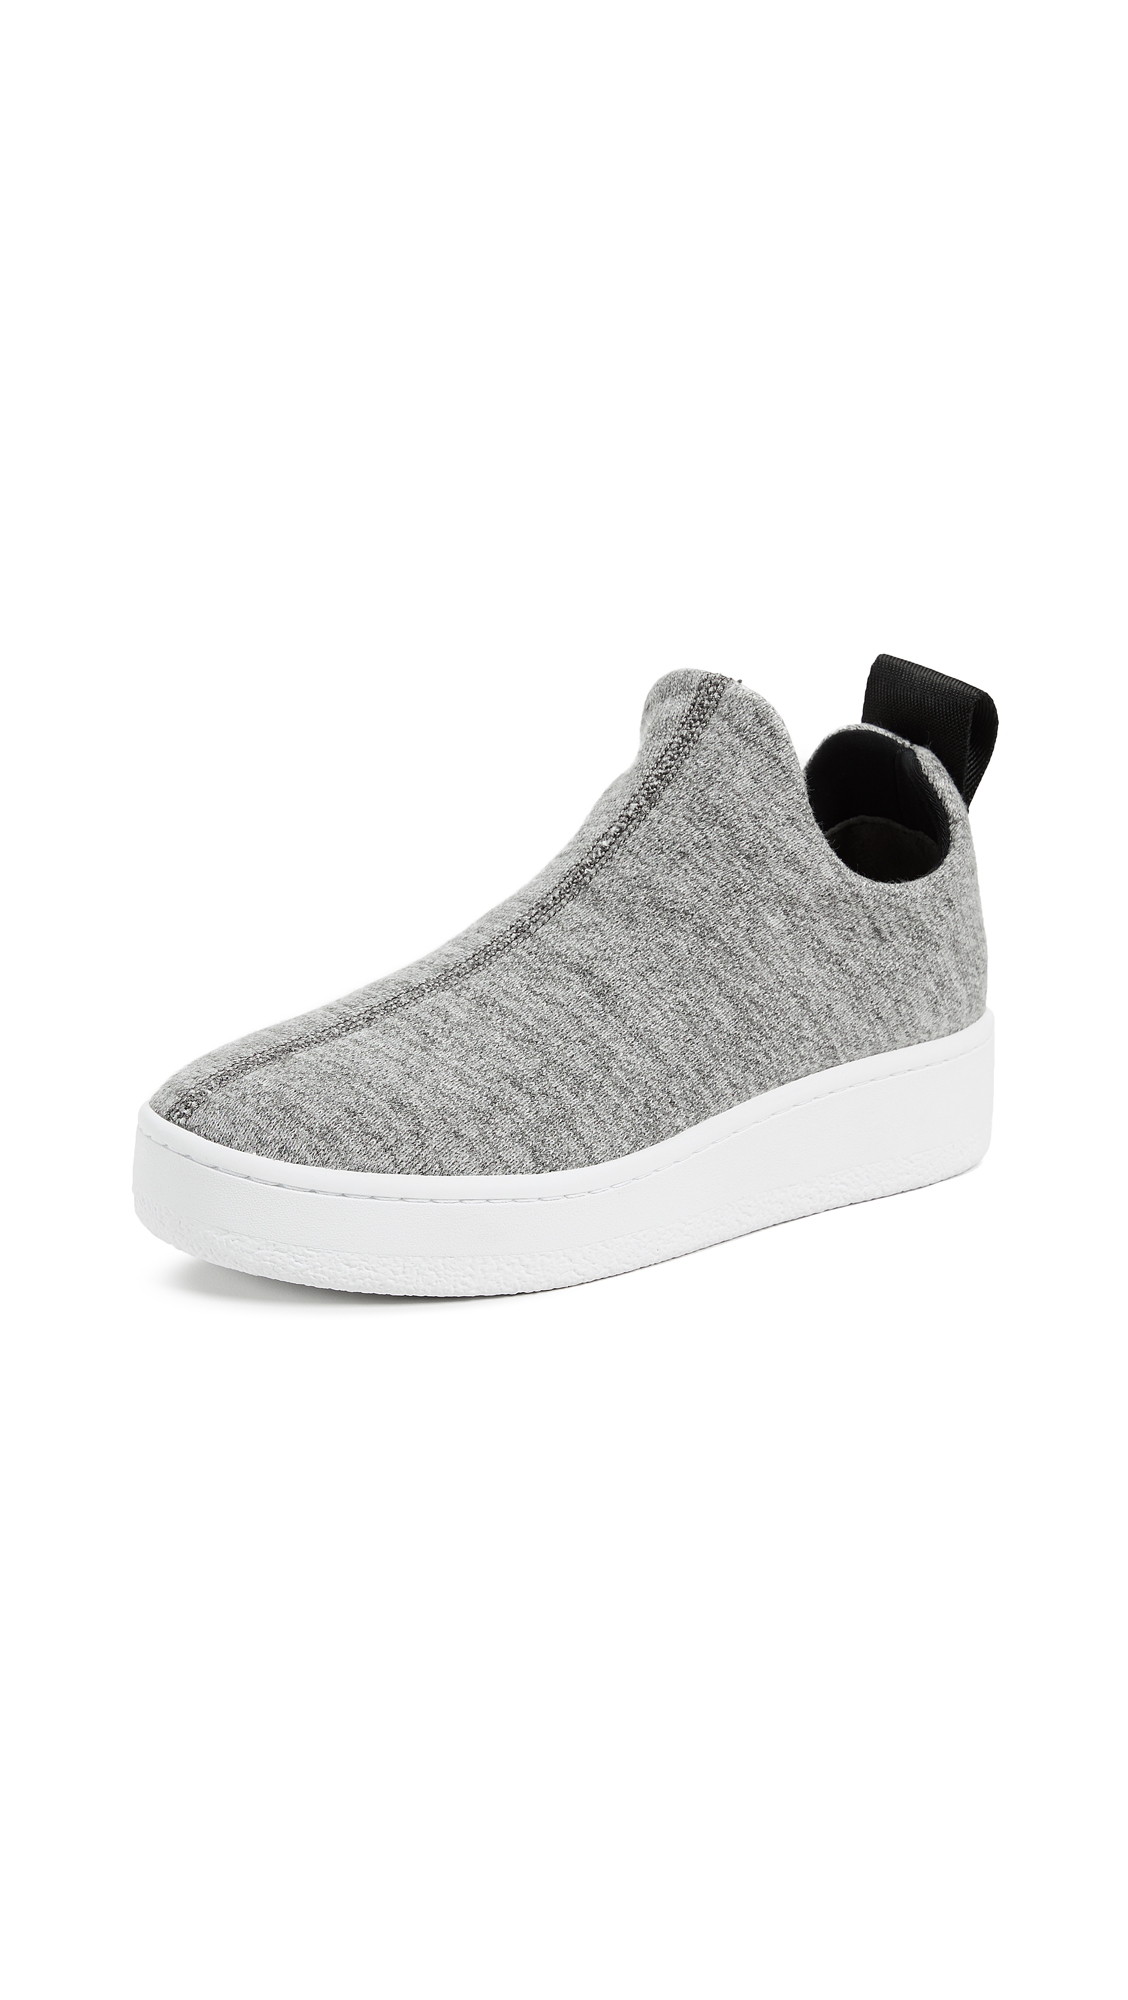 Rag & Bone Orion Knit Slip On Sneakers